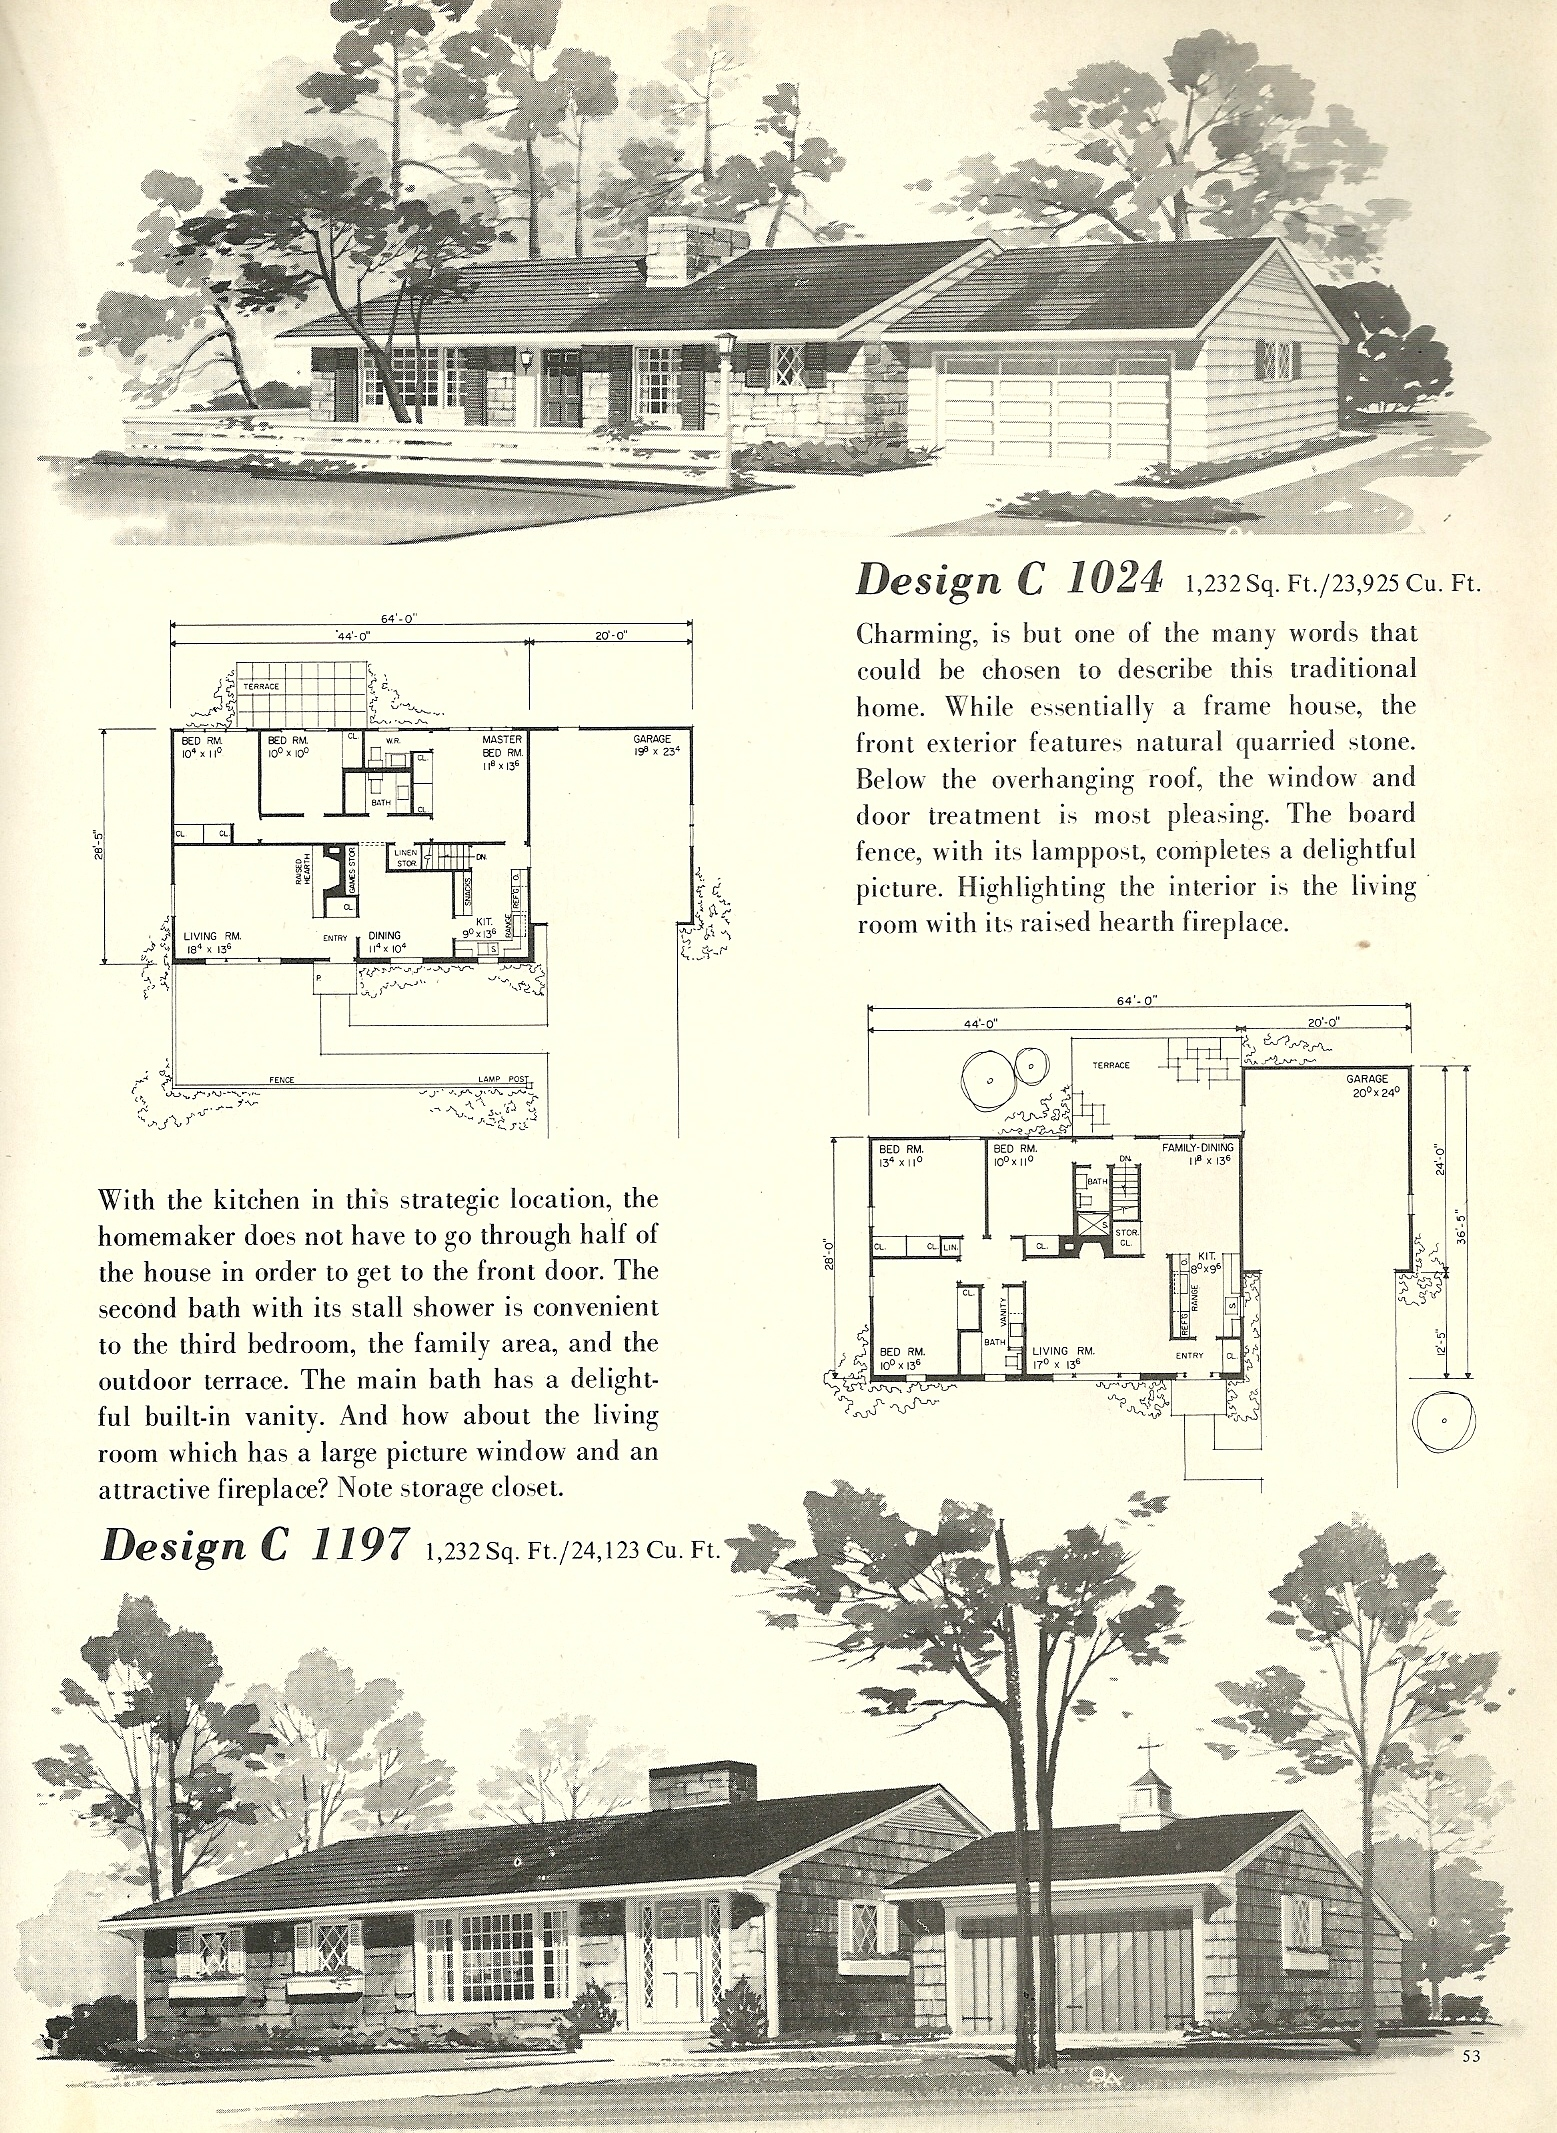 Vintage house plans 1024 antique alter ego for Vintage home plans